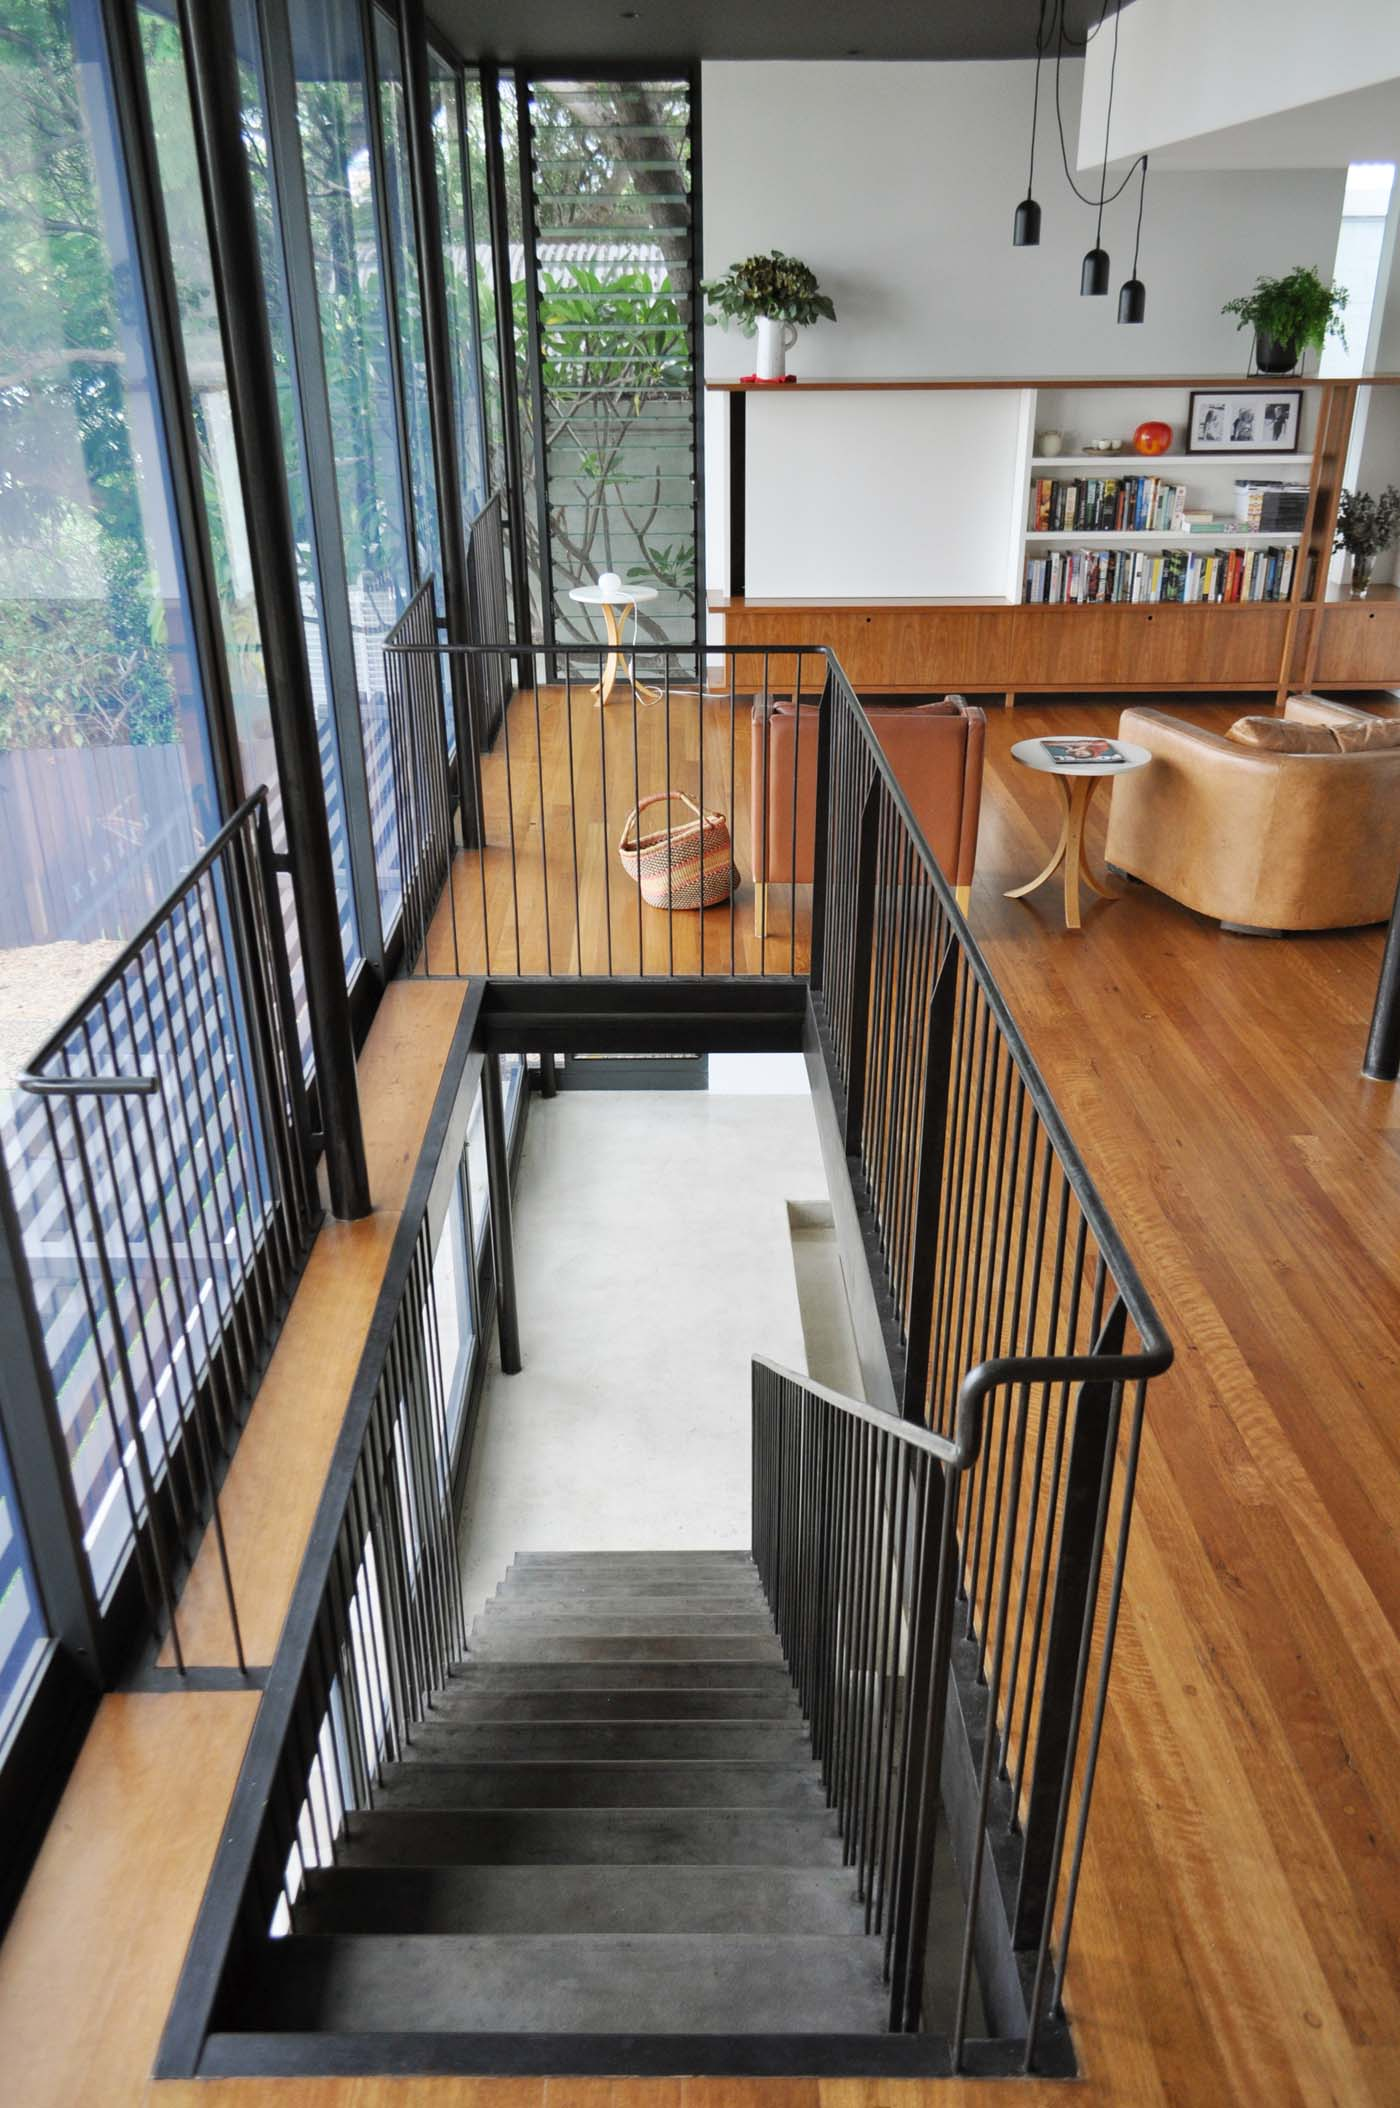 Balmain Cottage by award winning Sydney firm Sam Crawford Architects. View to folded raw steel staircase and black powder coated handrail